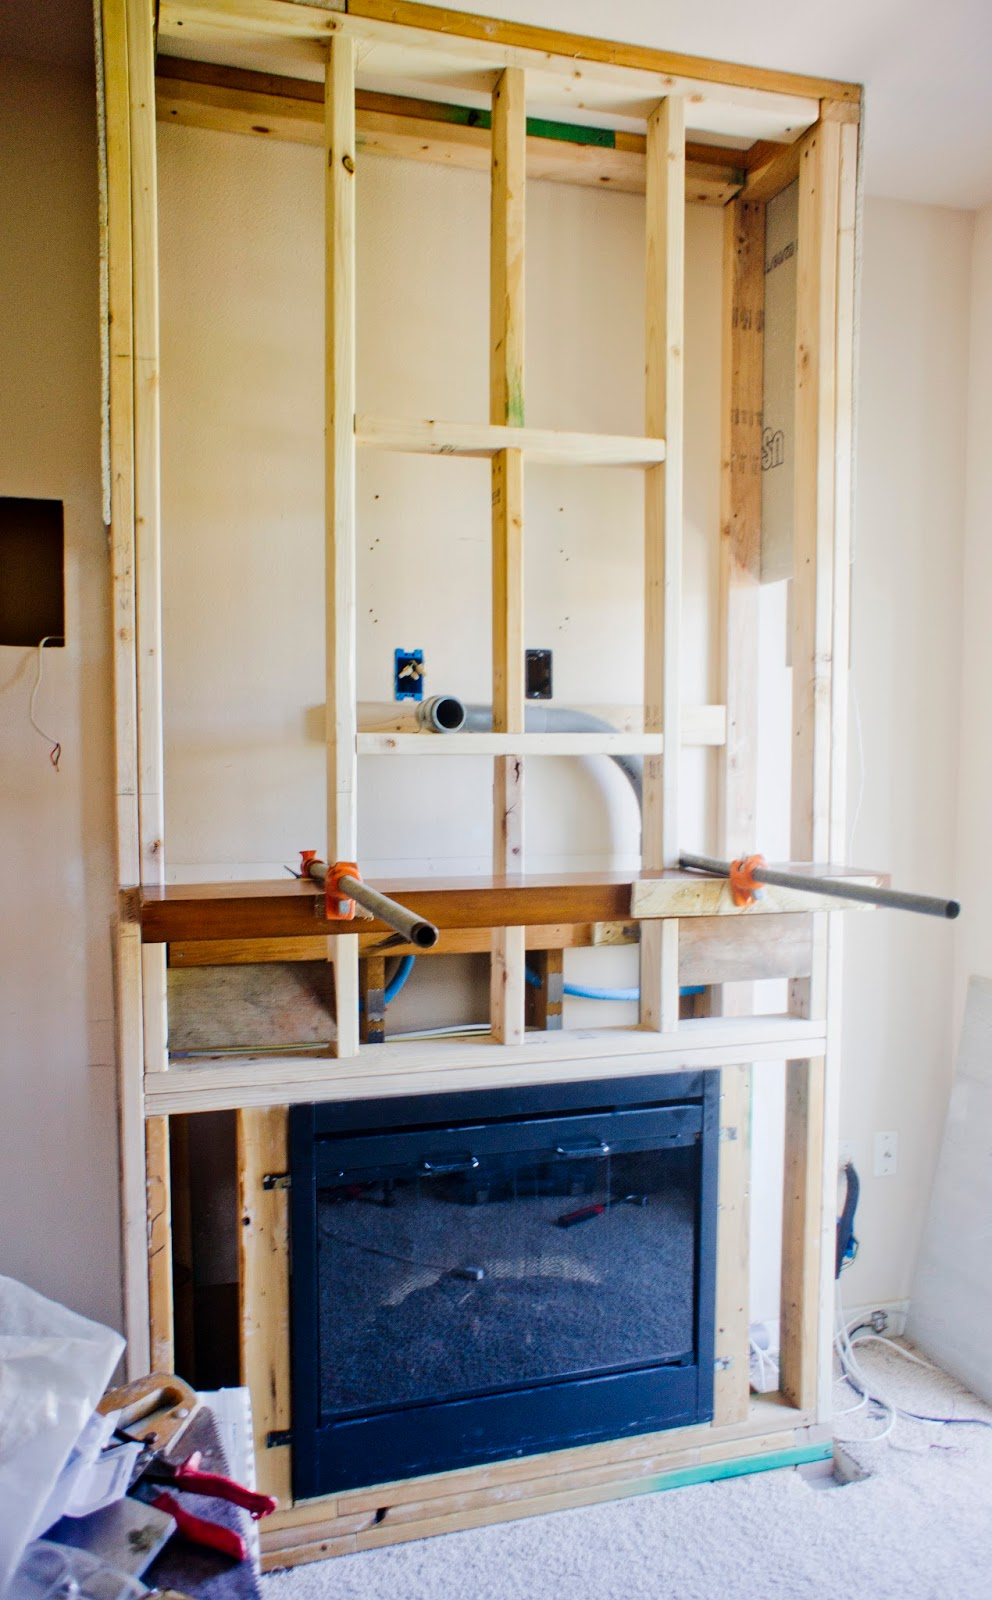 diy stacked stone fireplace first remodeling project part 2 - How To Build A Fireplace Surround